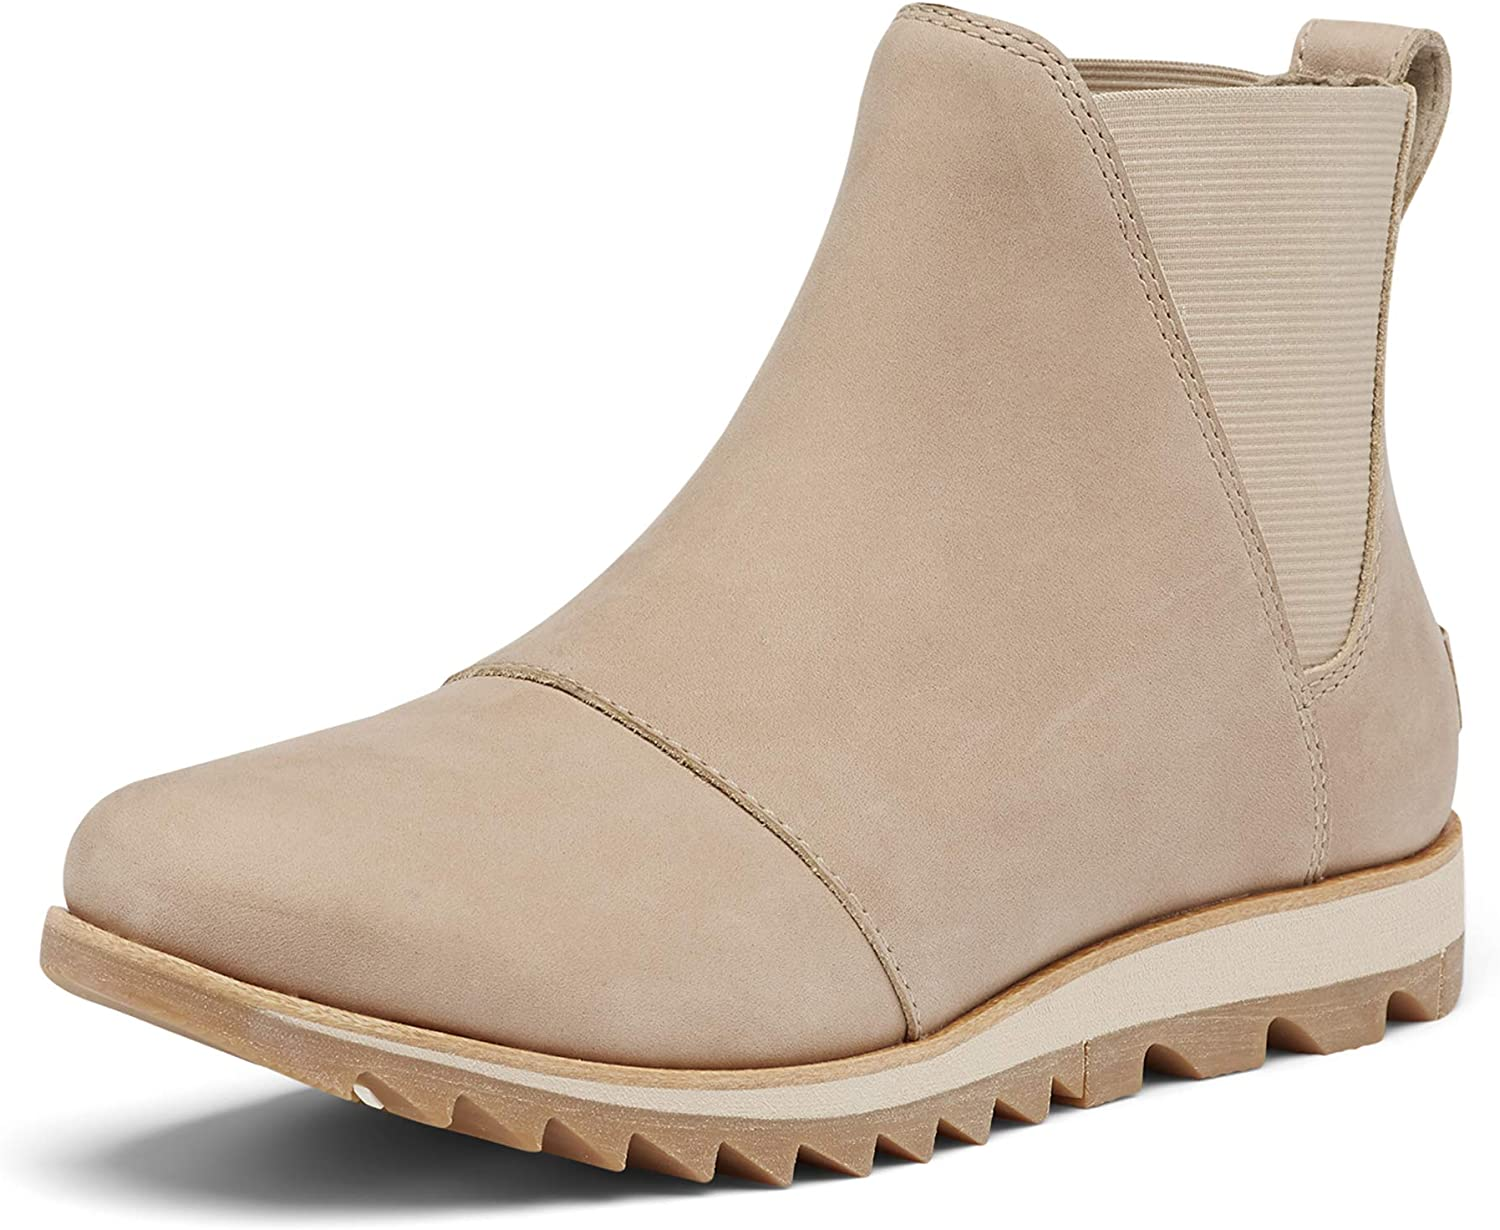 SOREL Women's Harlow Chelsea Rain Boot — Ankl New Shipping Free Shipping At the price of surprise Leather Waterproof